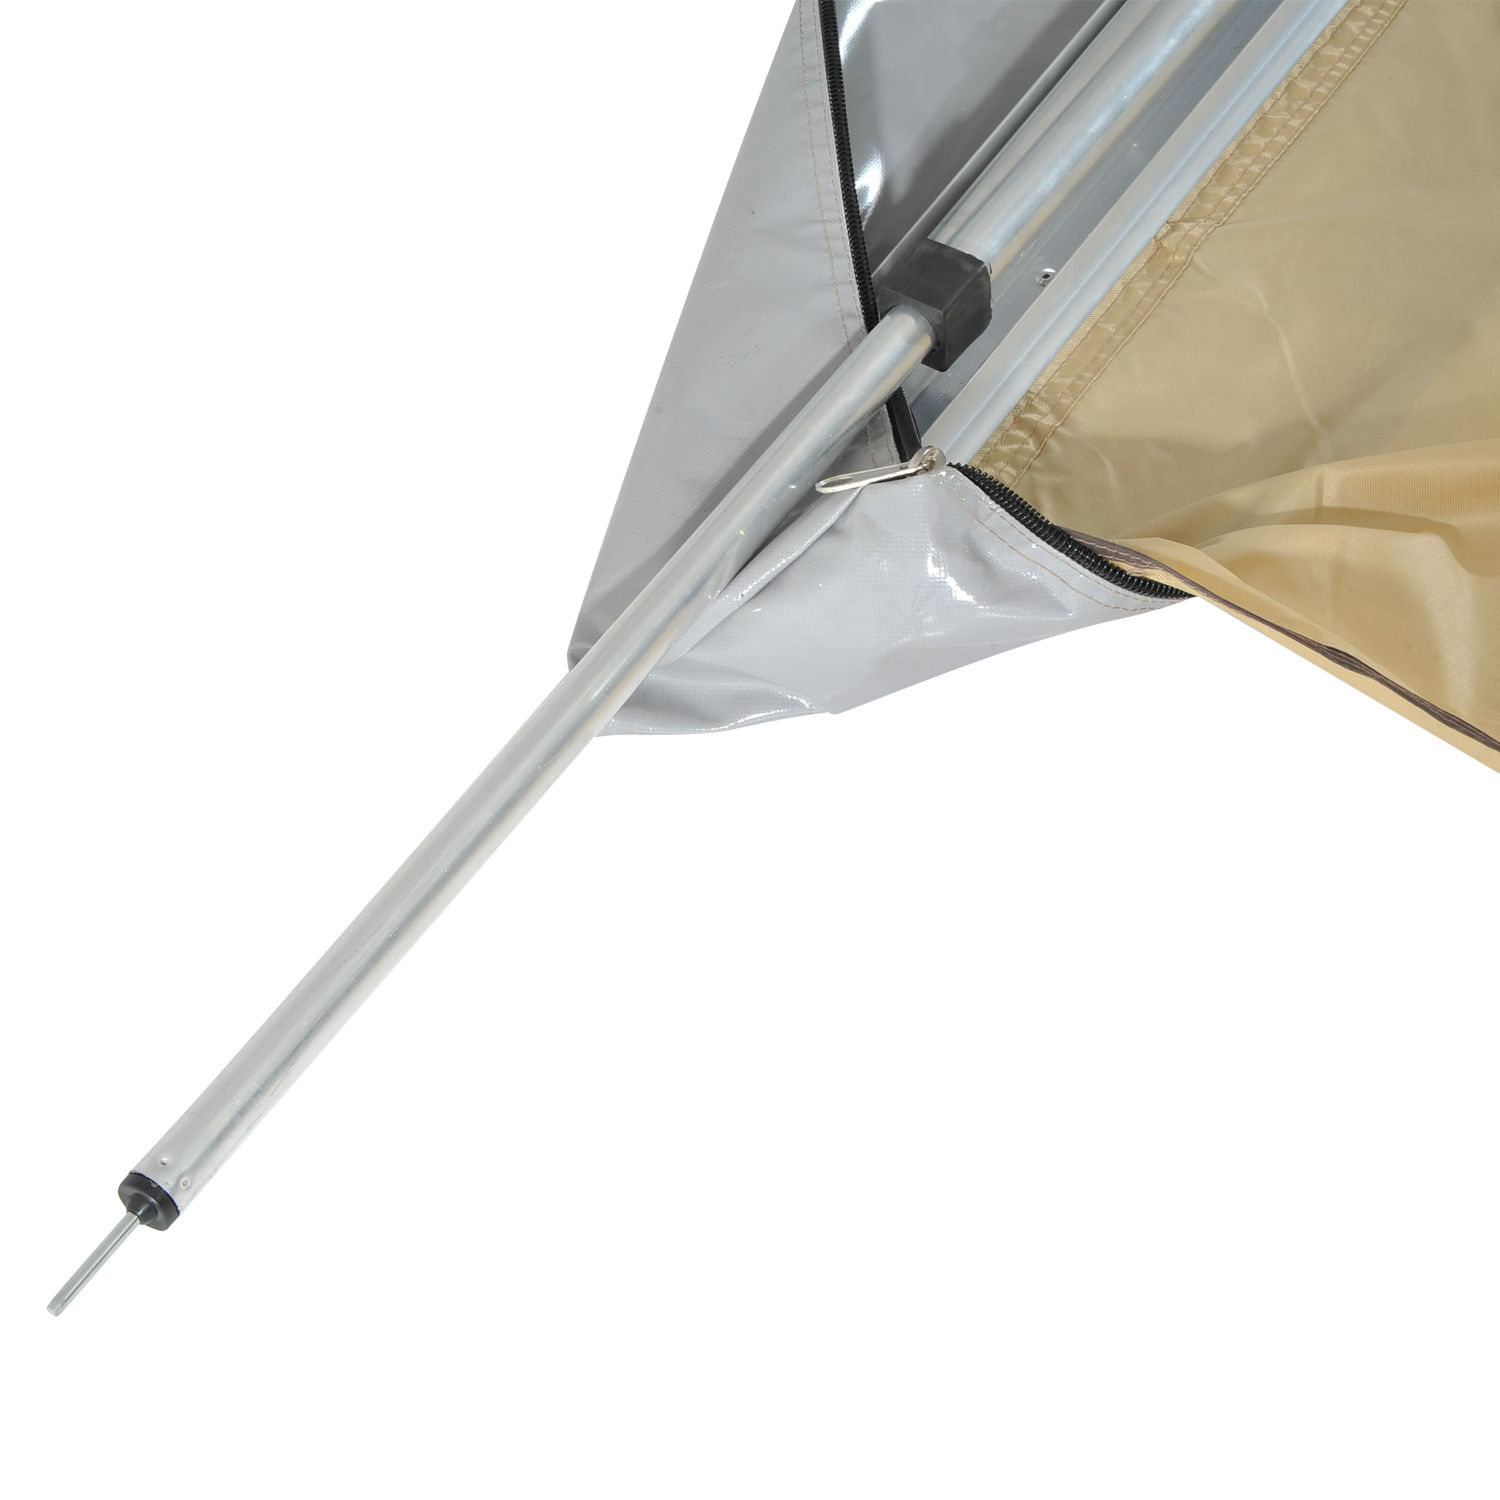 Outsunny Tent Awning Rooftop Shelter SUV Truck Car Camping